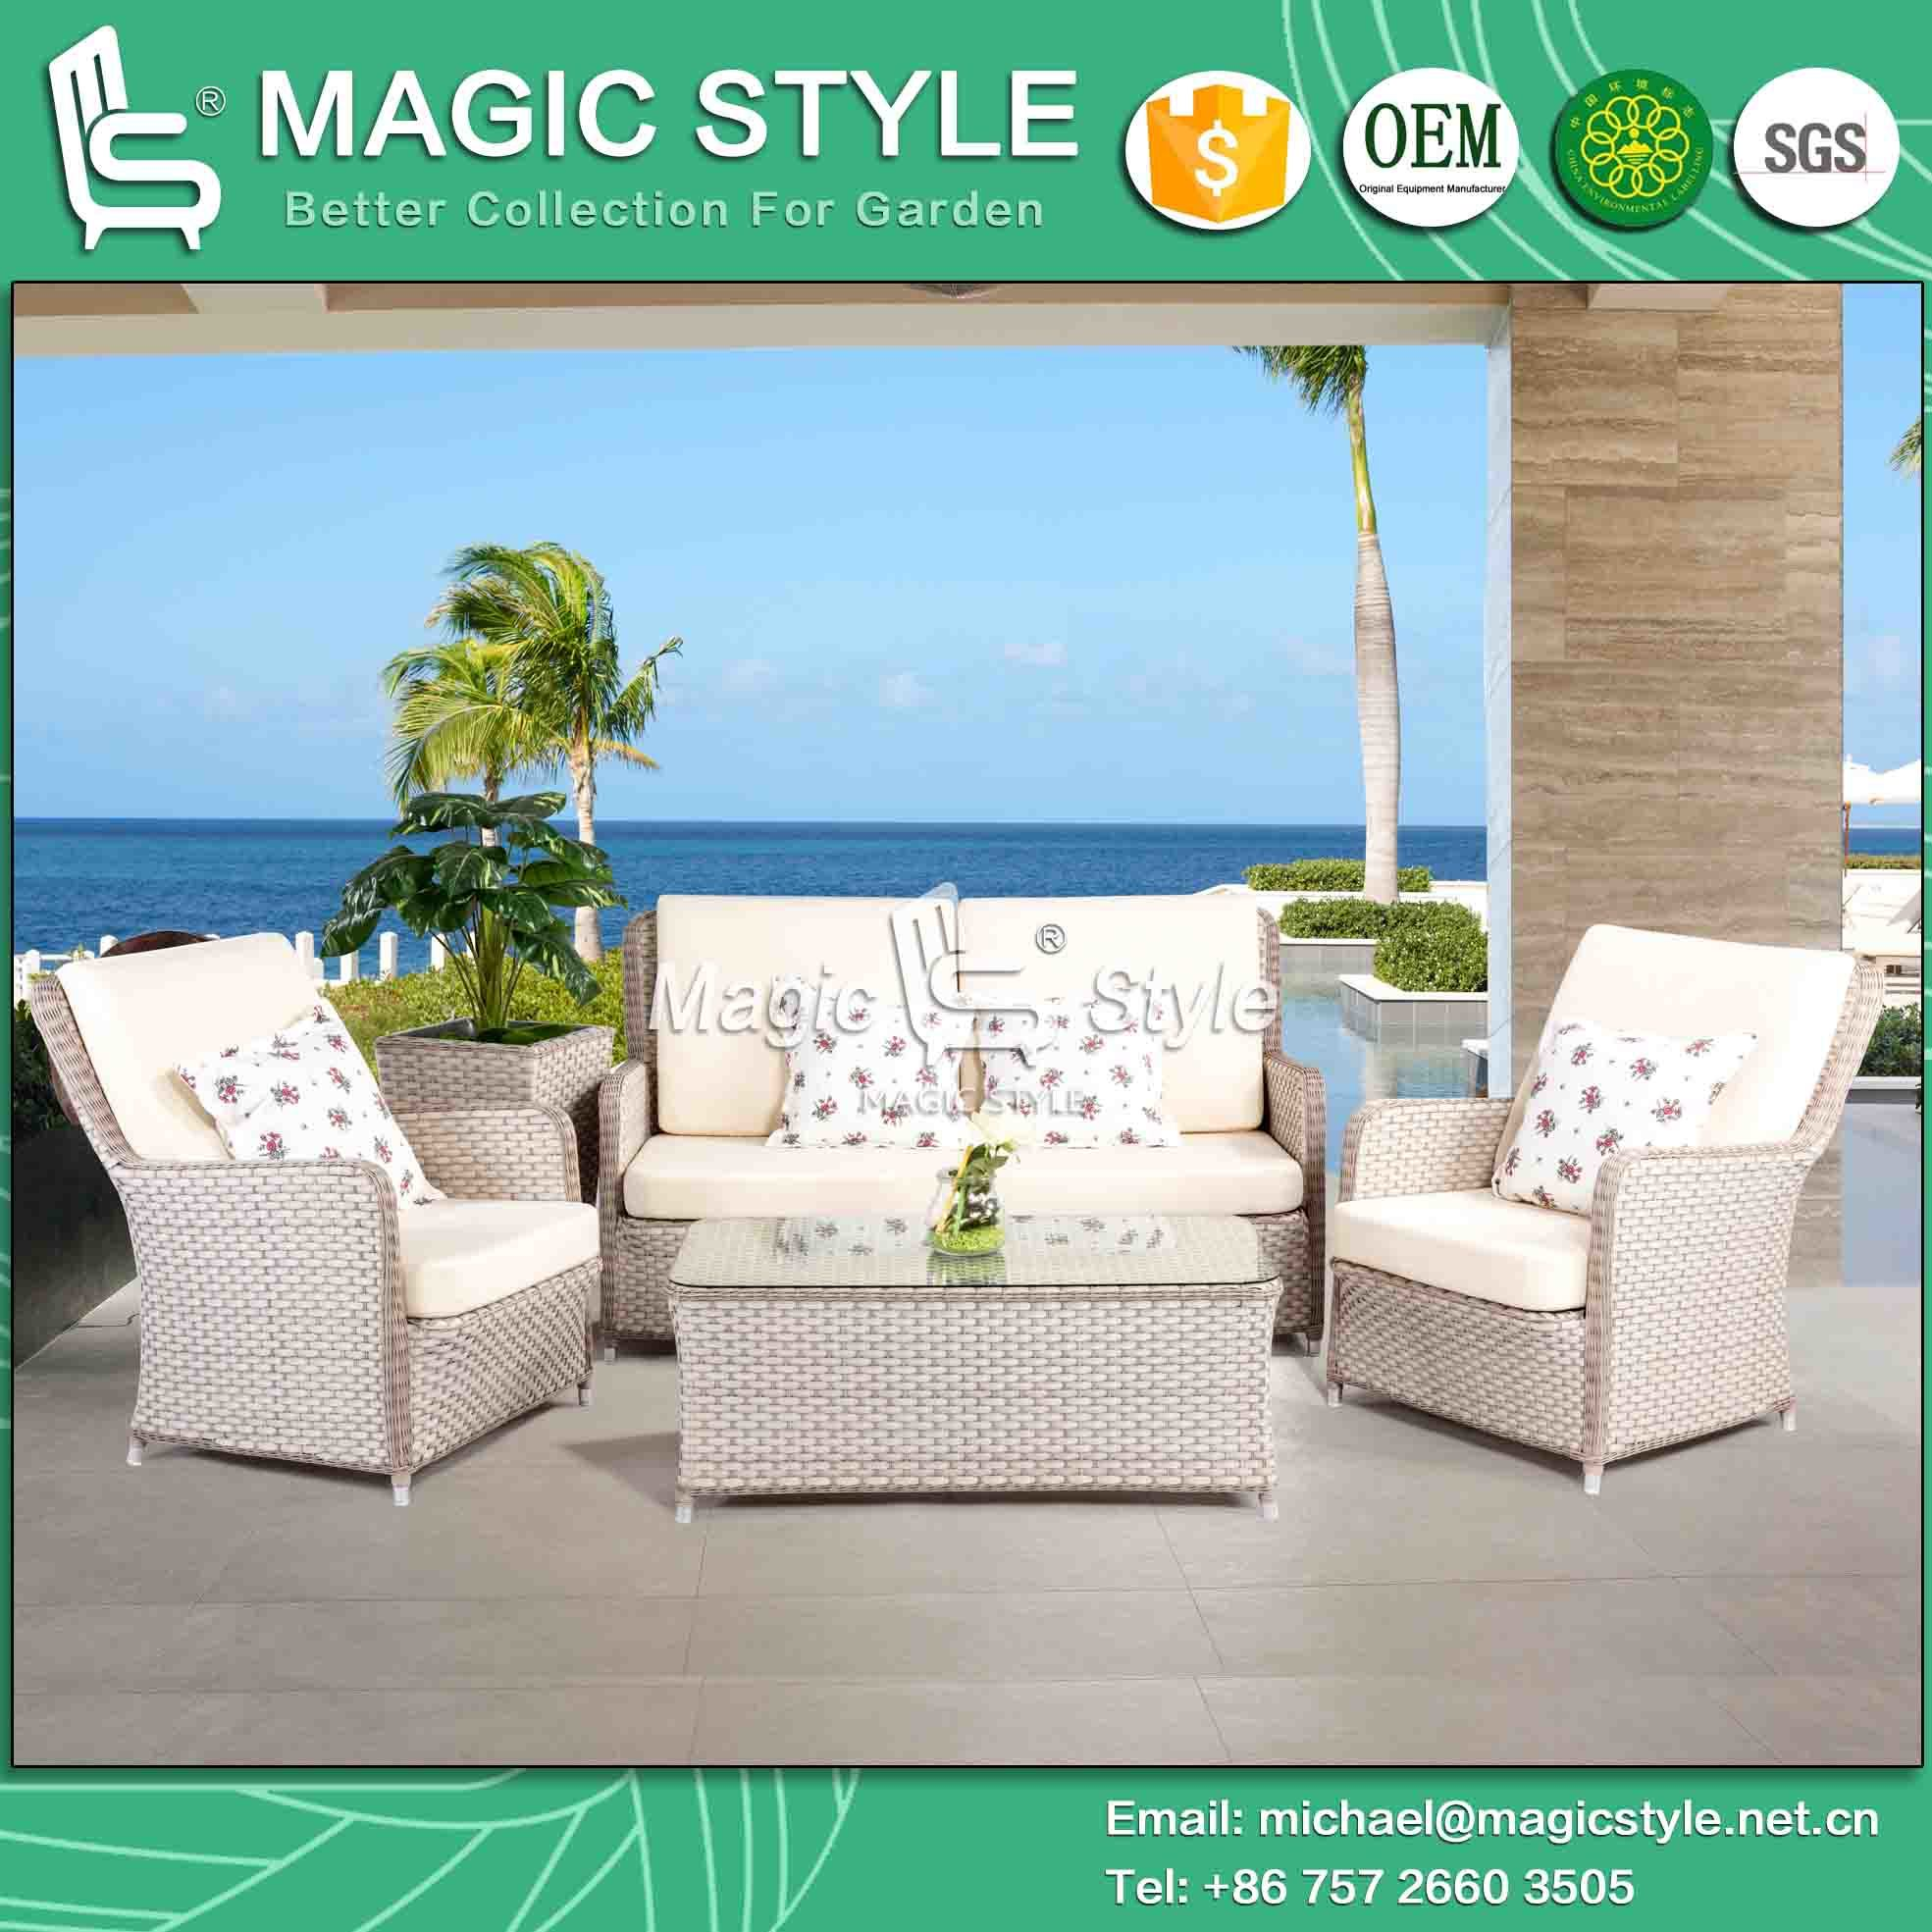 Outdoor Sofa Set Patio Sofa Wicker Sofa Rattan Sofa Rattan Sofa with Cushion Leisure Wicker Sofa (MAGIC STYLE)